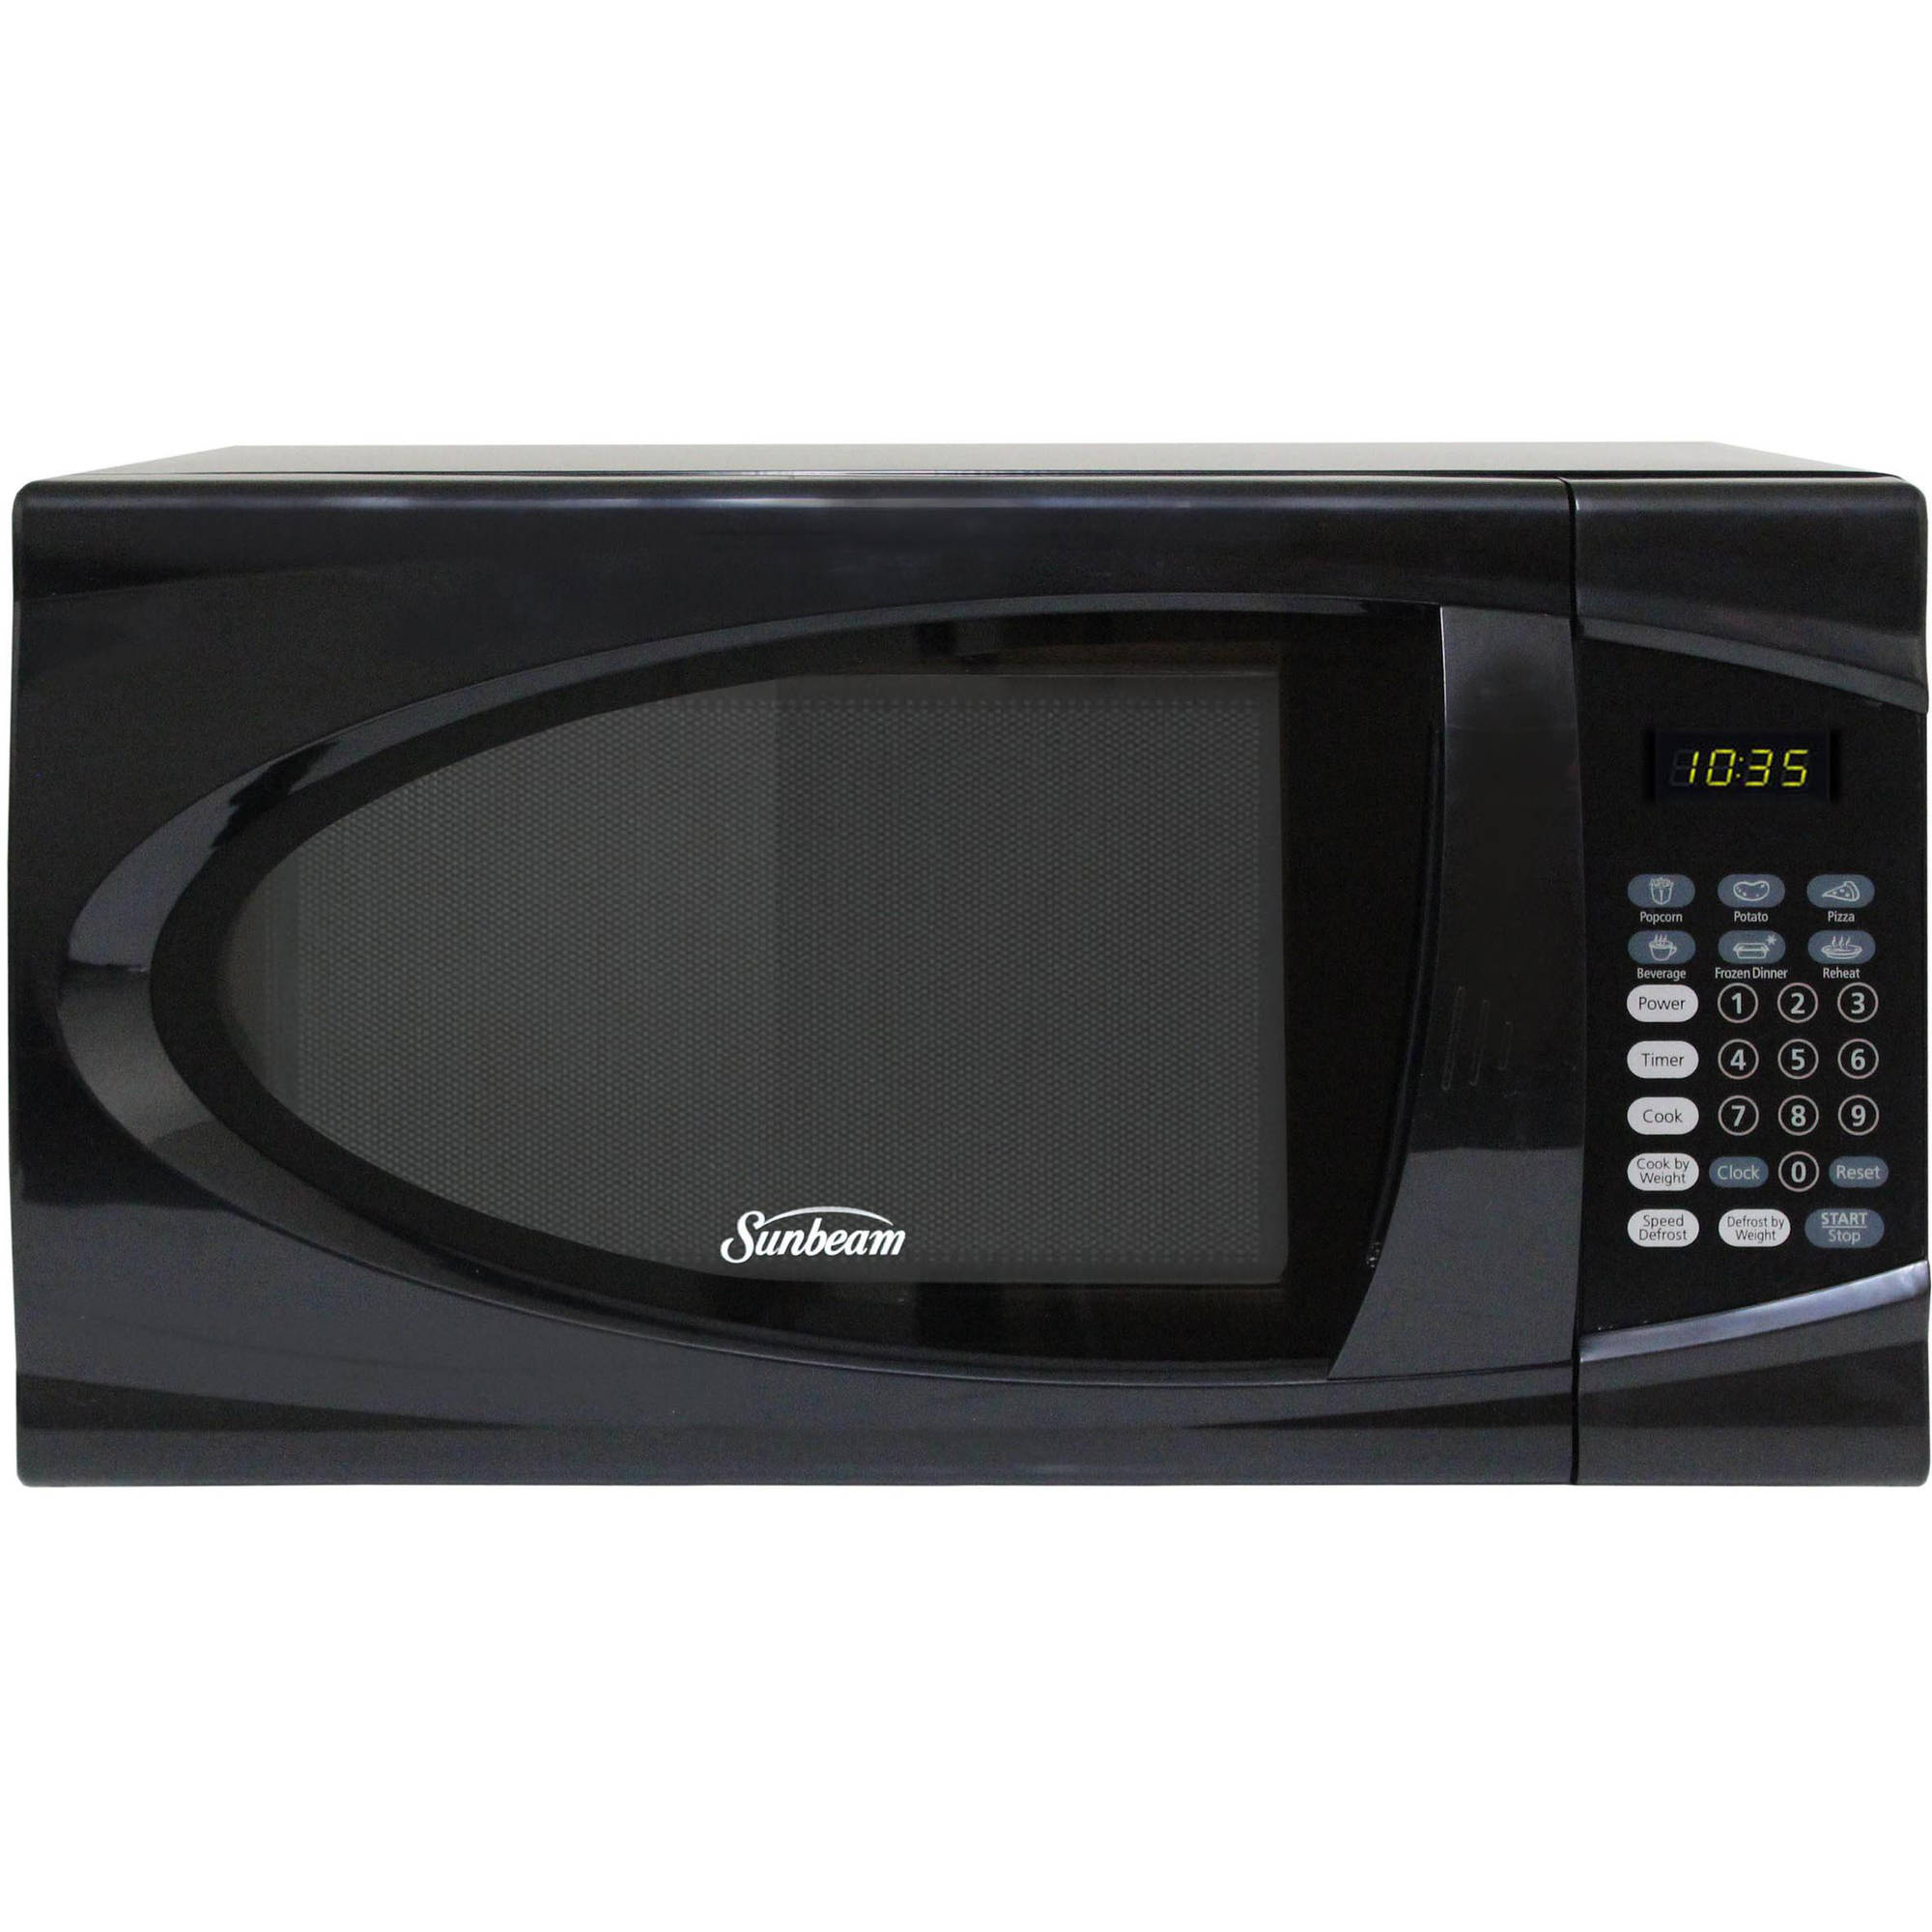 Sunbeam 0.9 cu ft Microwave, Black